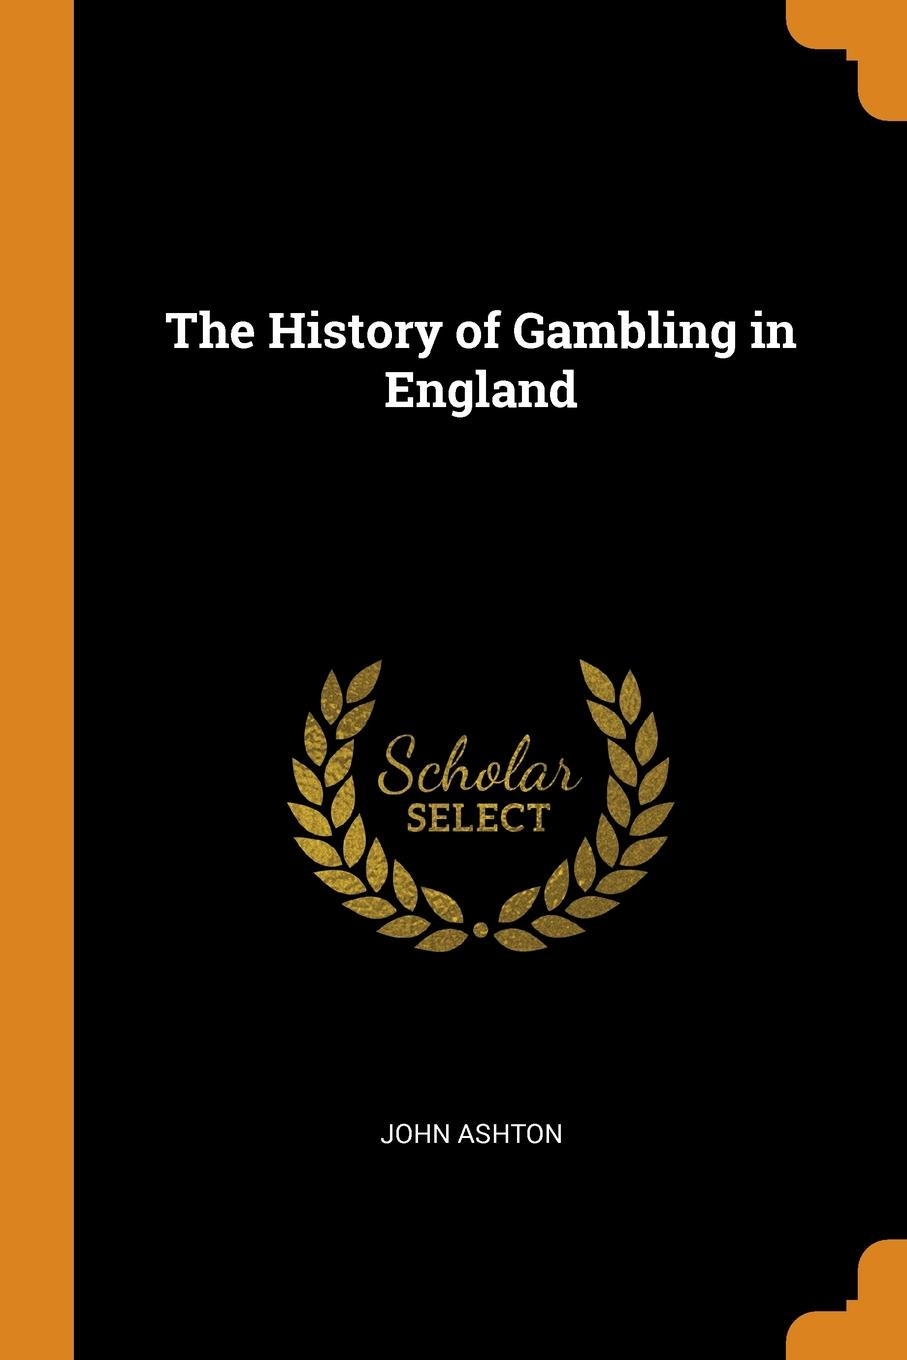 John Ashton. The History of Gambling in England